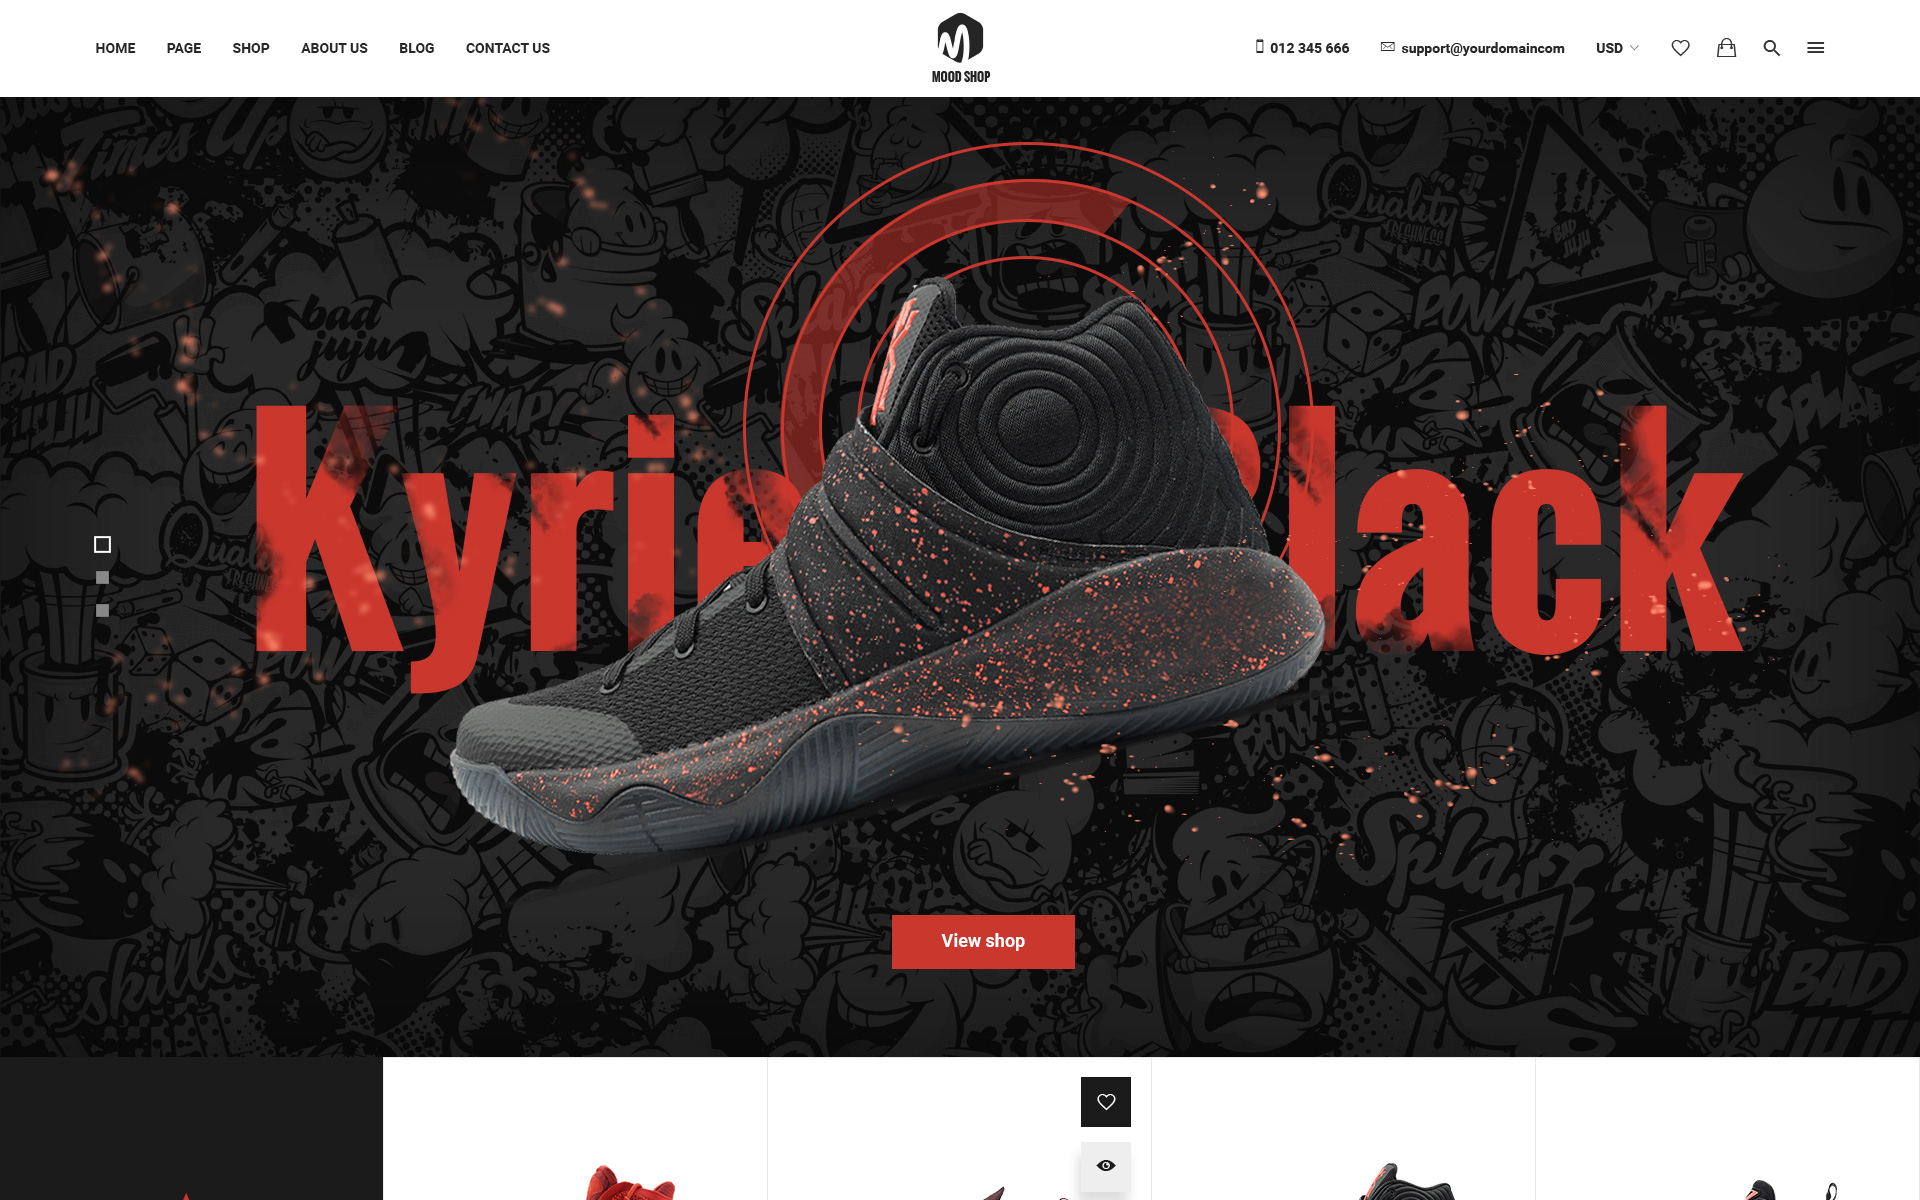 Moodshop - Modern eCommerce Footwear Online Shop PSD Template Big Screenshot